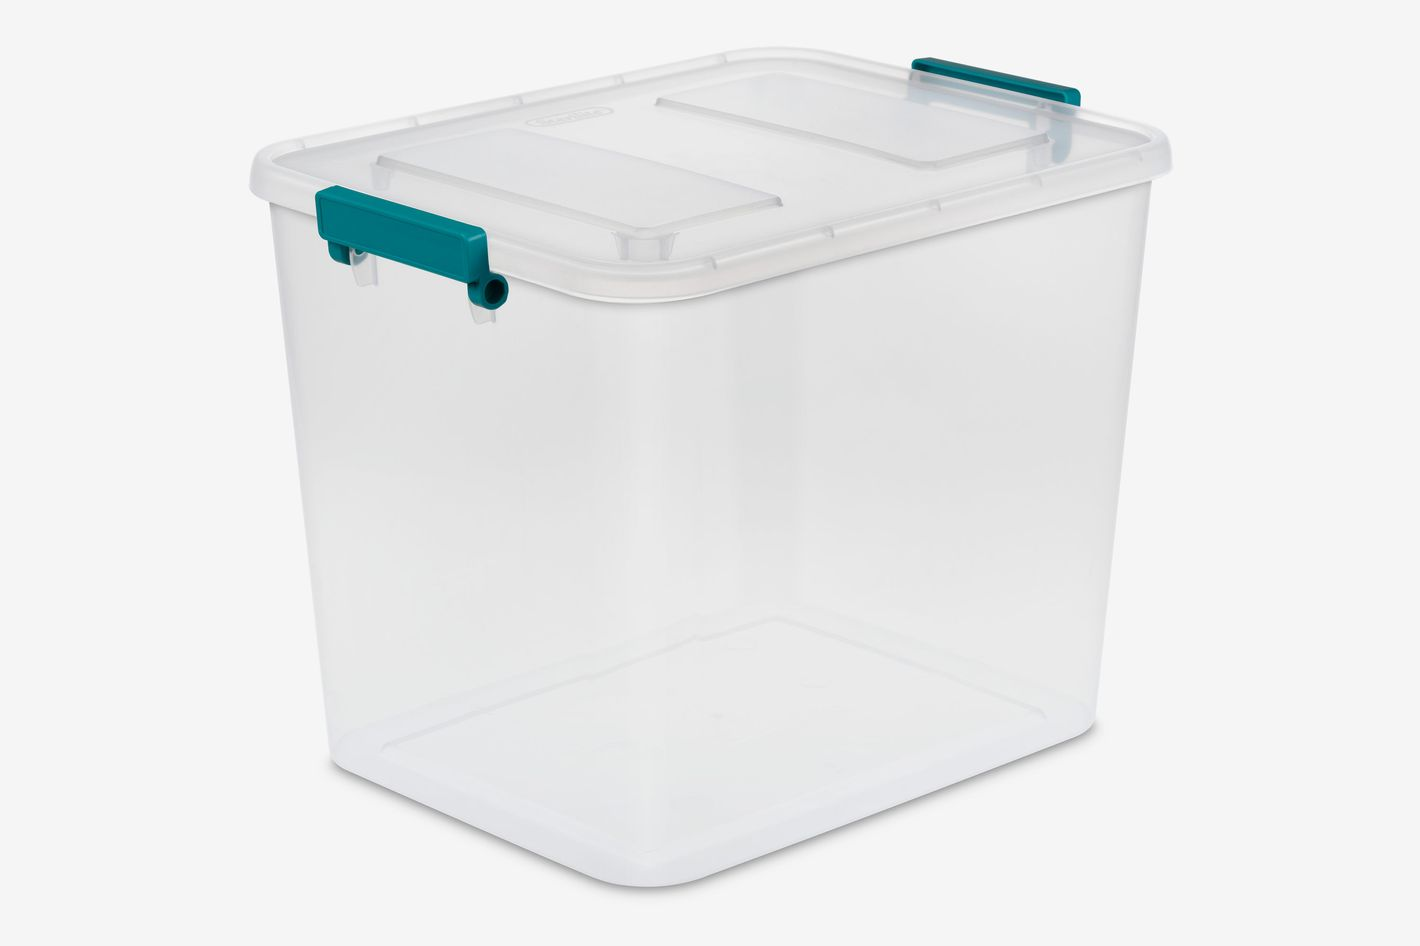 Sterilite, 24 Quart / 22.7 Liter Modular Latch Box